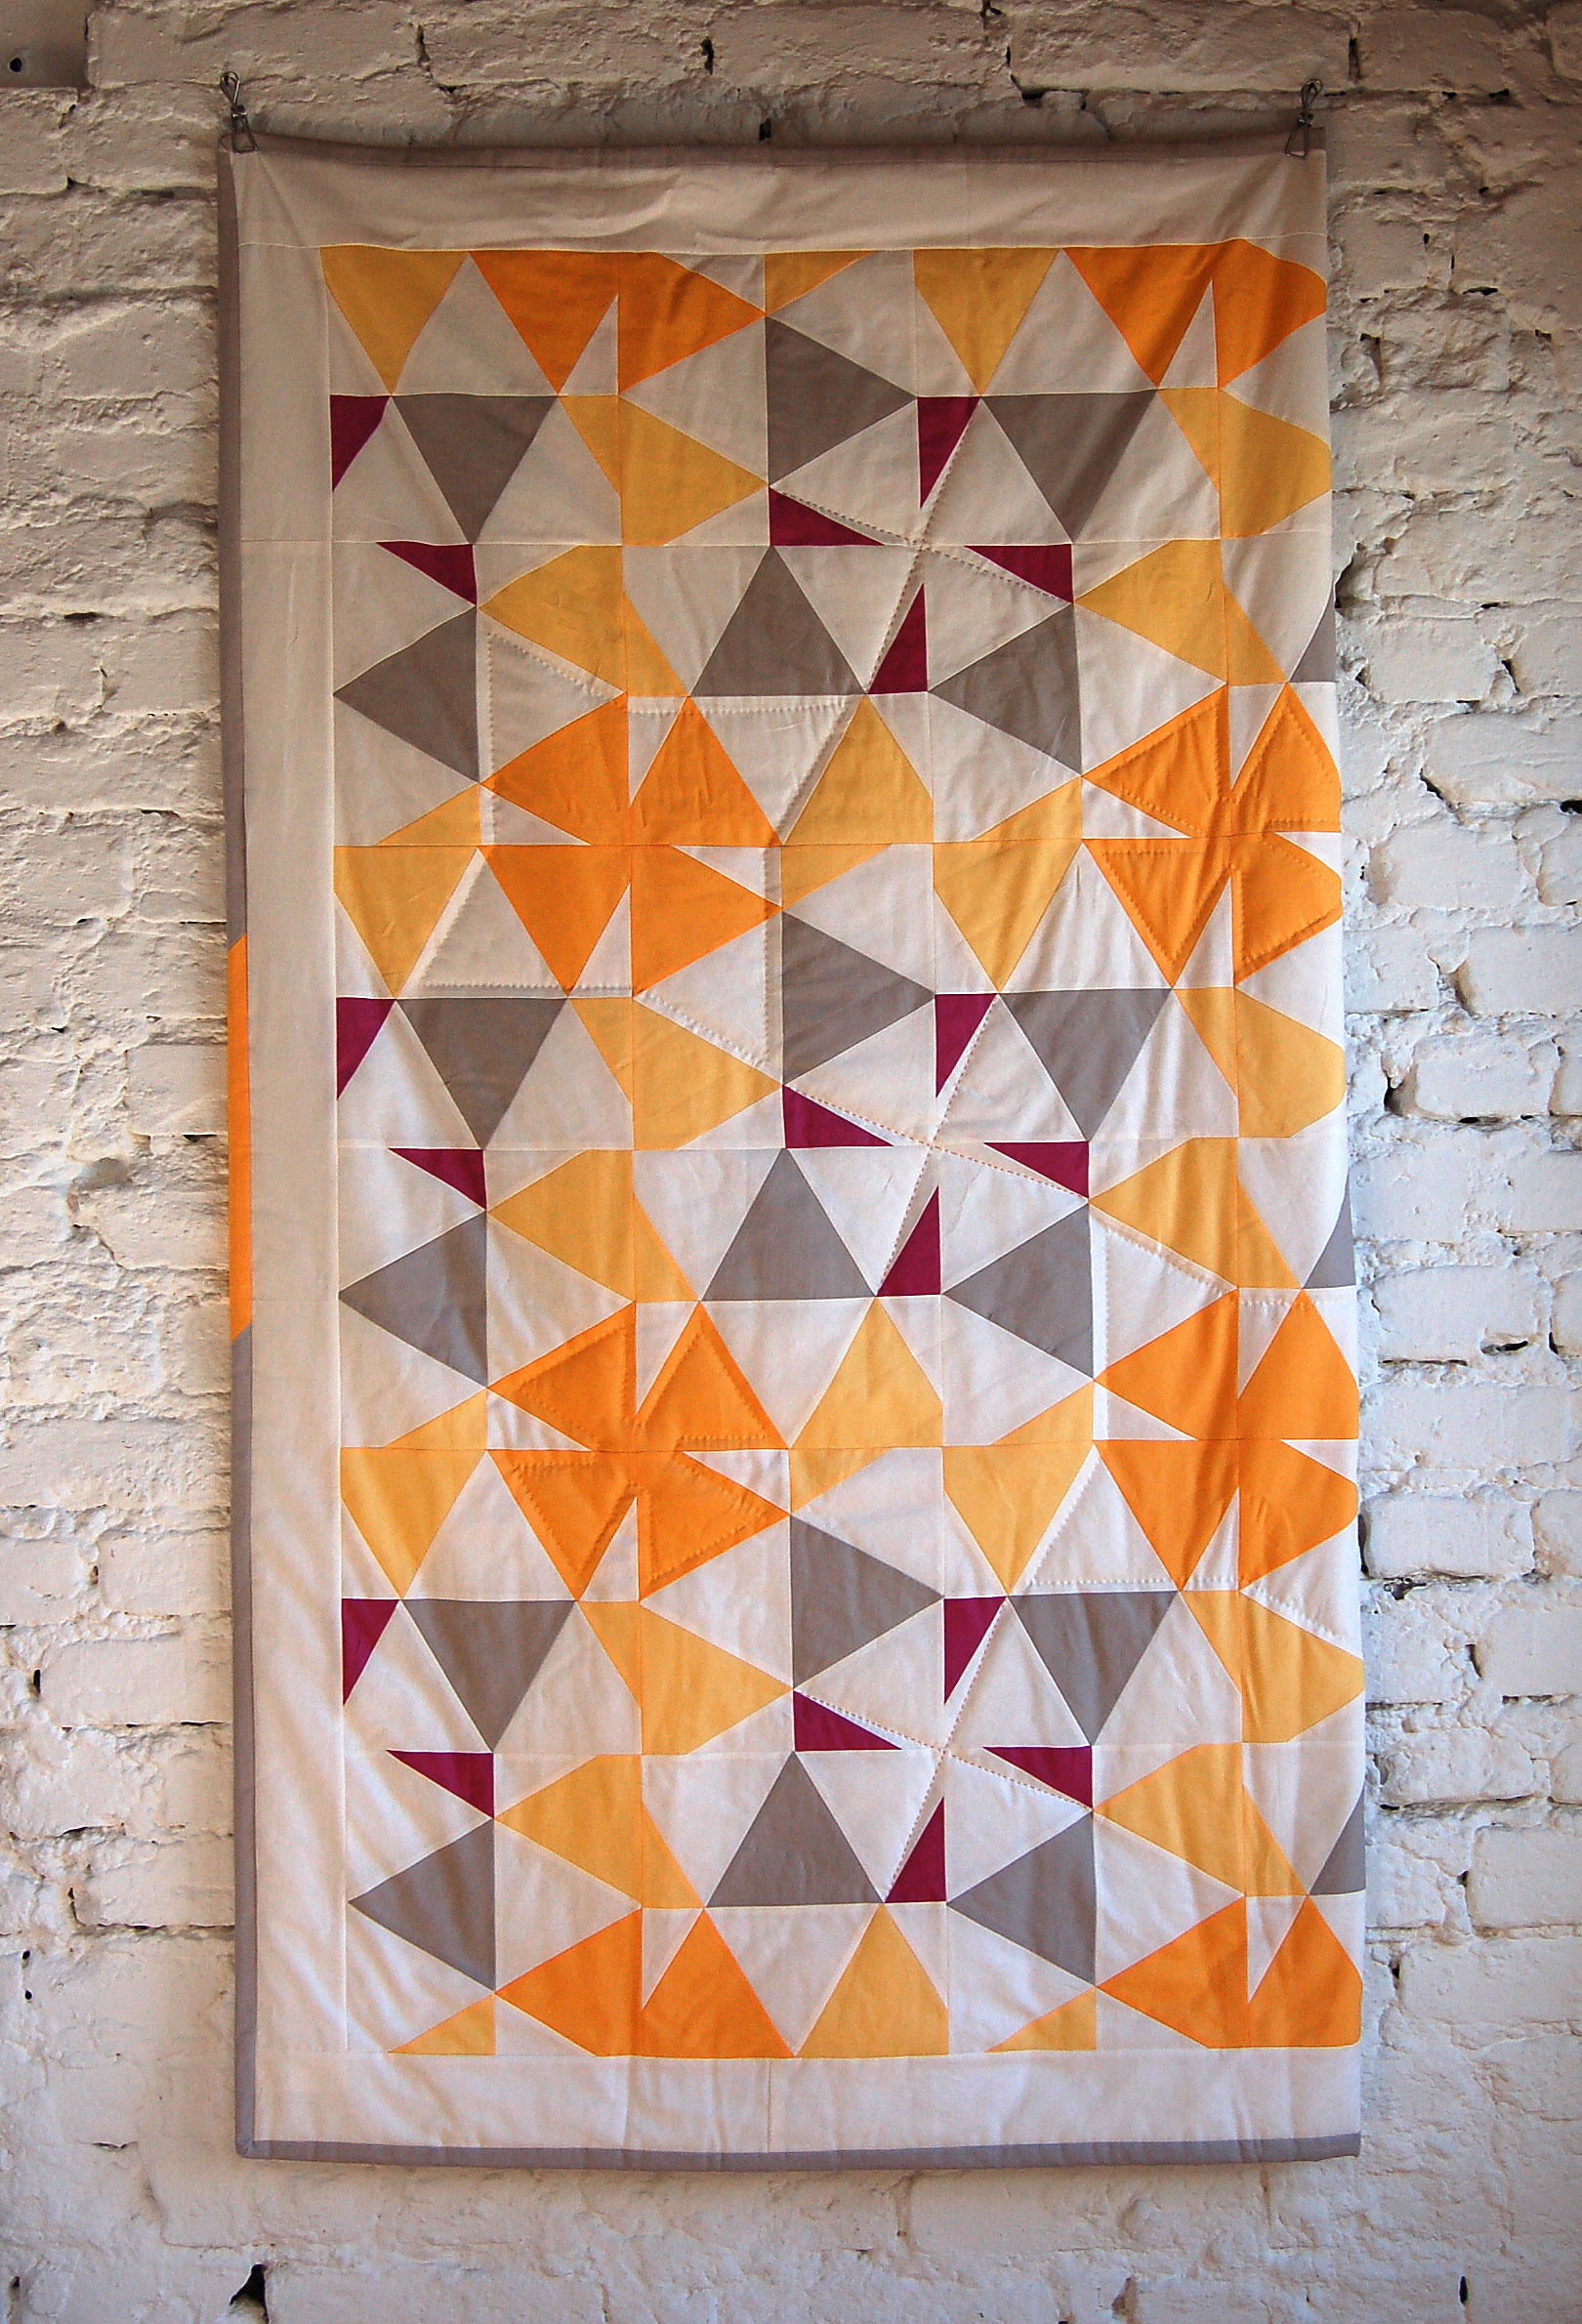 Edredon English.100 Days Week Of Solids Featured Quilt 1 The Modern Quilt Guild